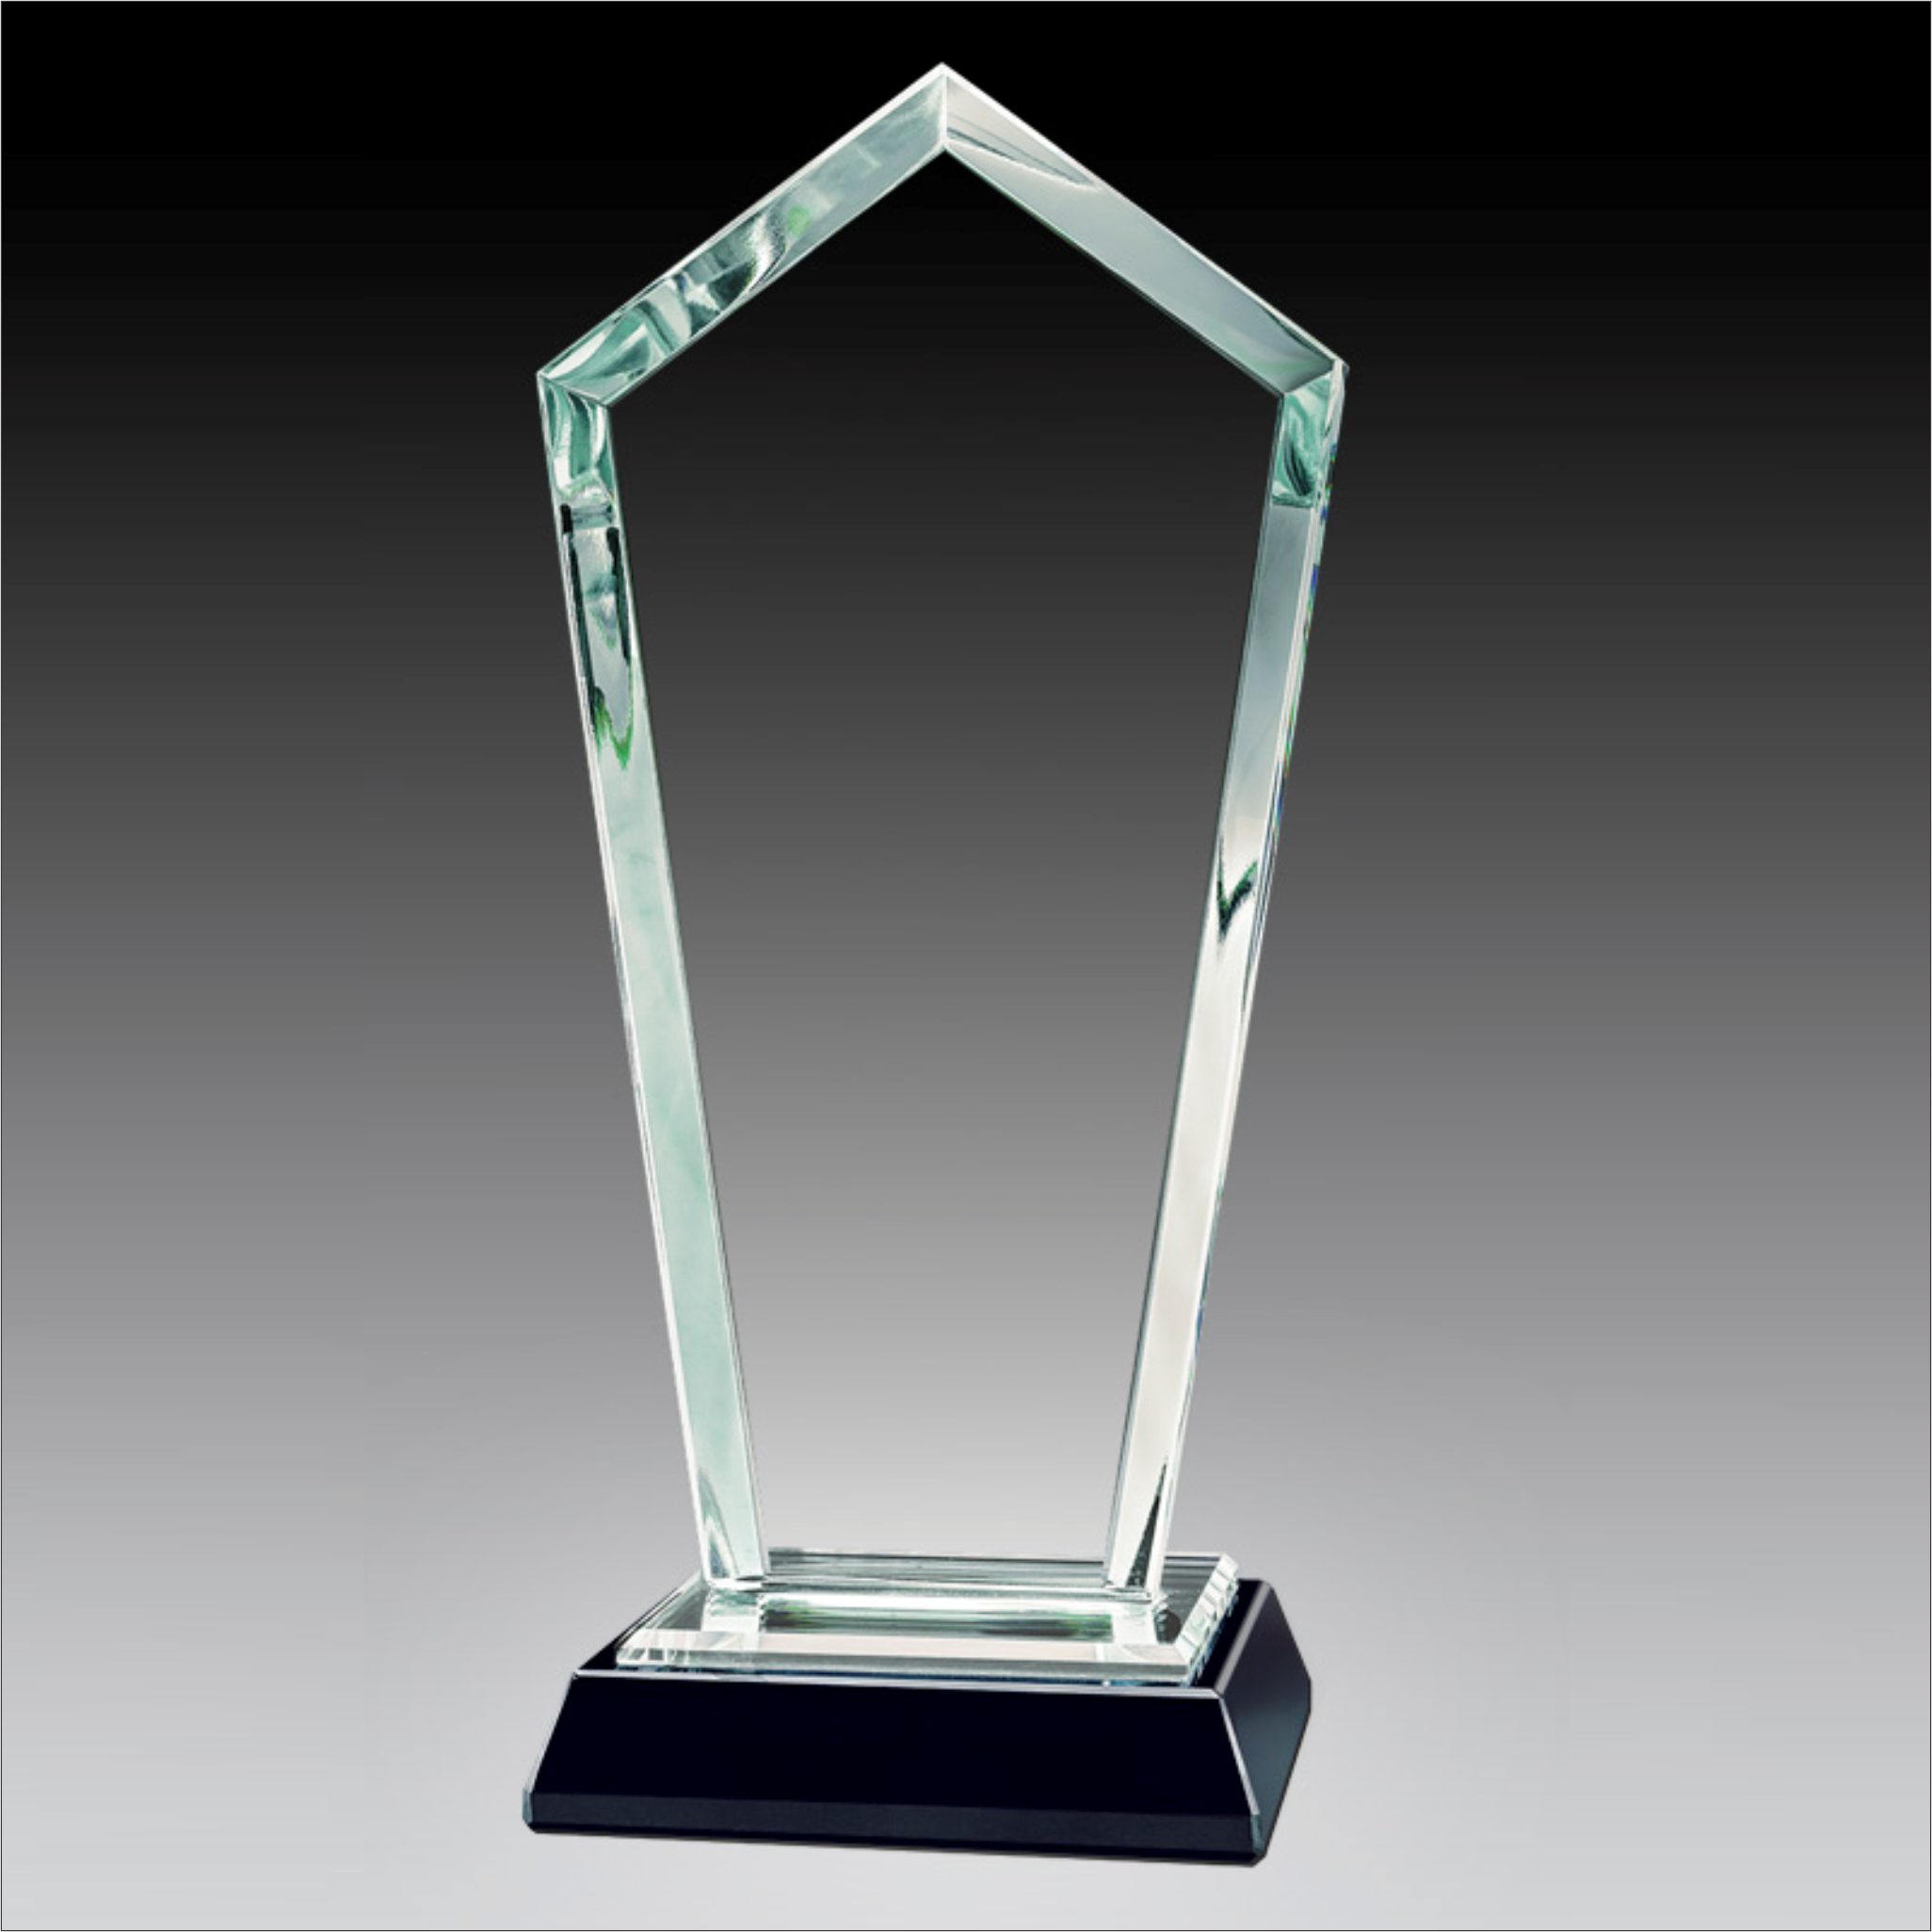 Peak Glass - Jade Reflection Prestige series